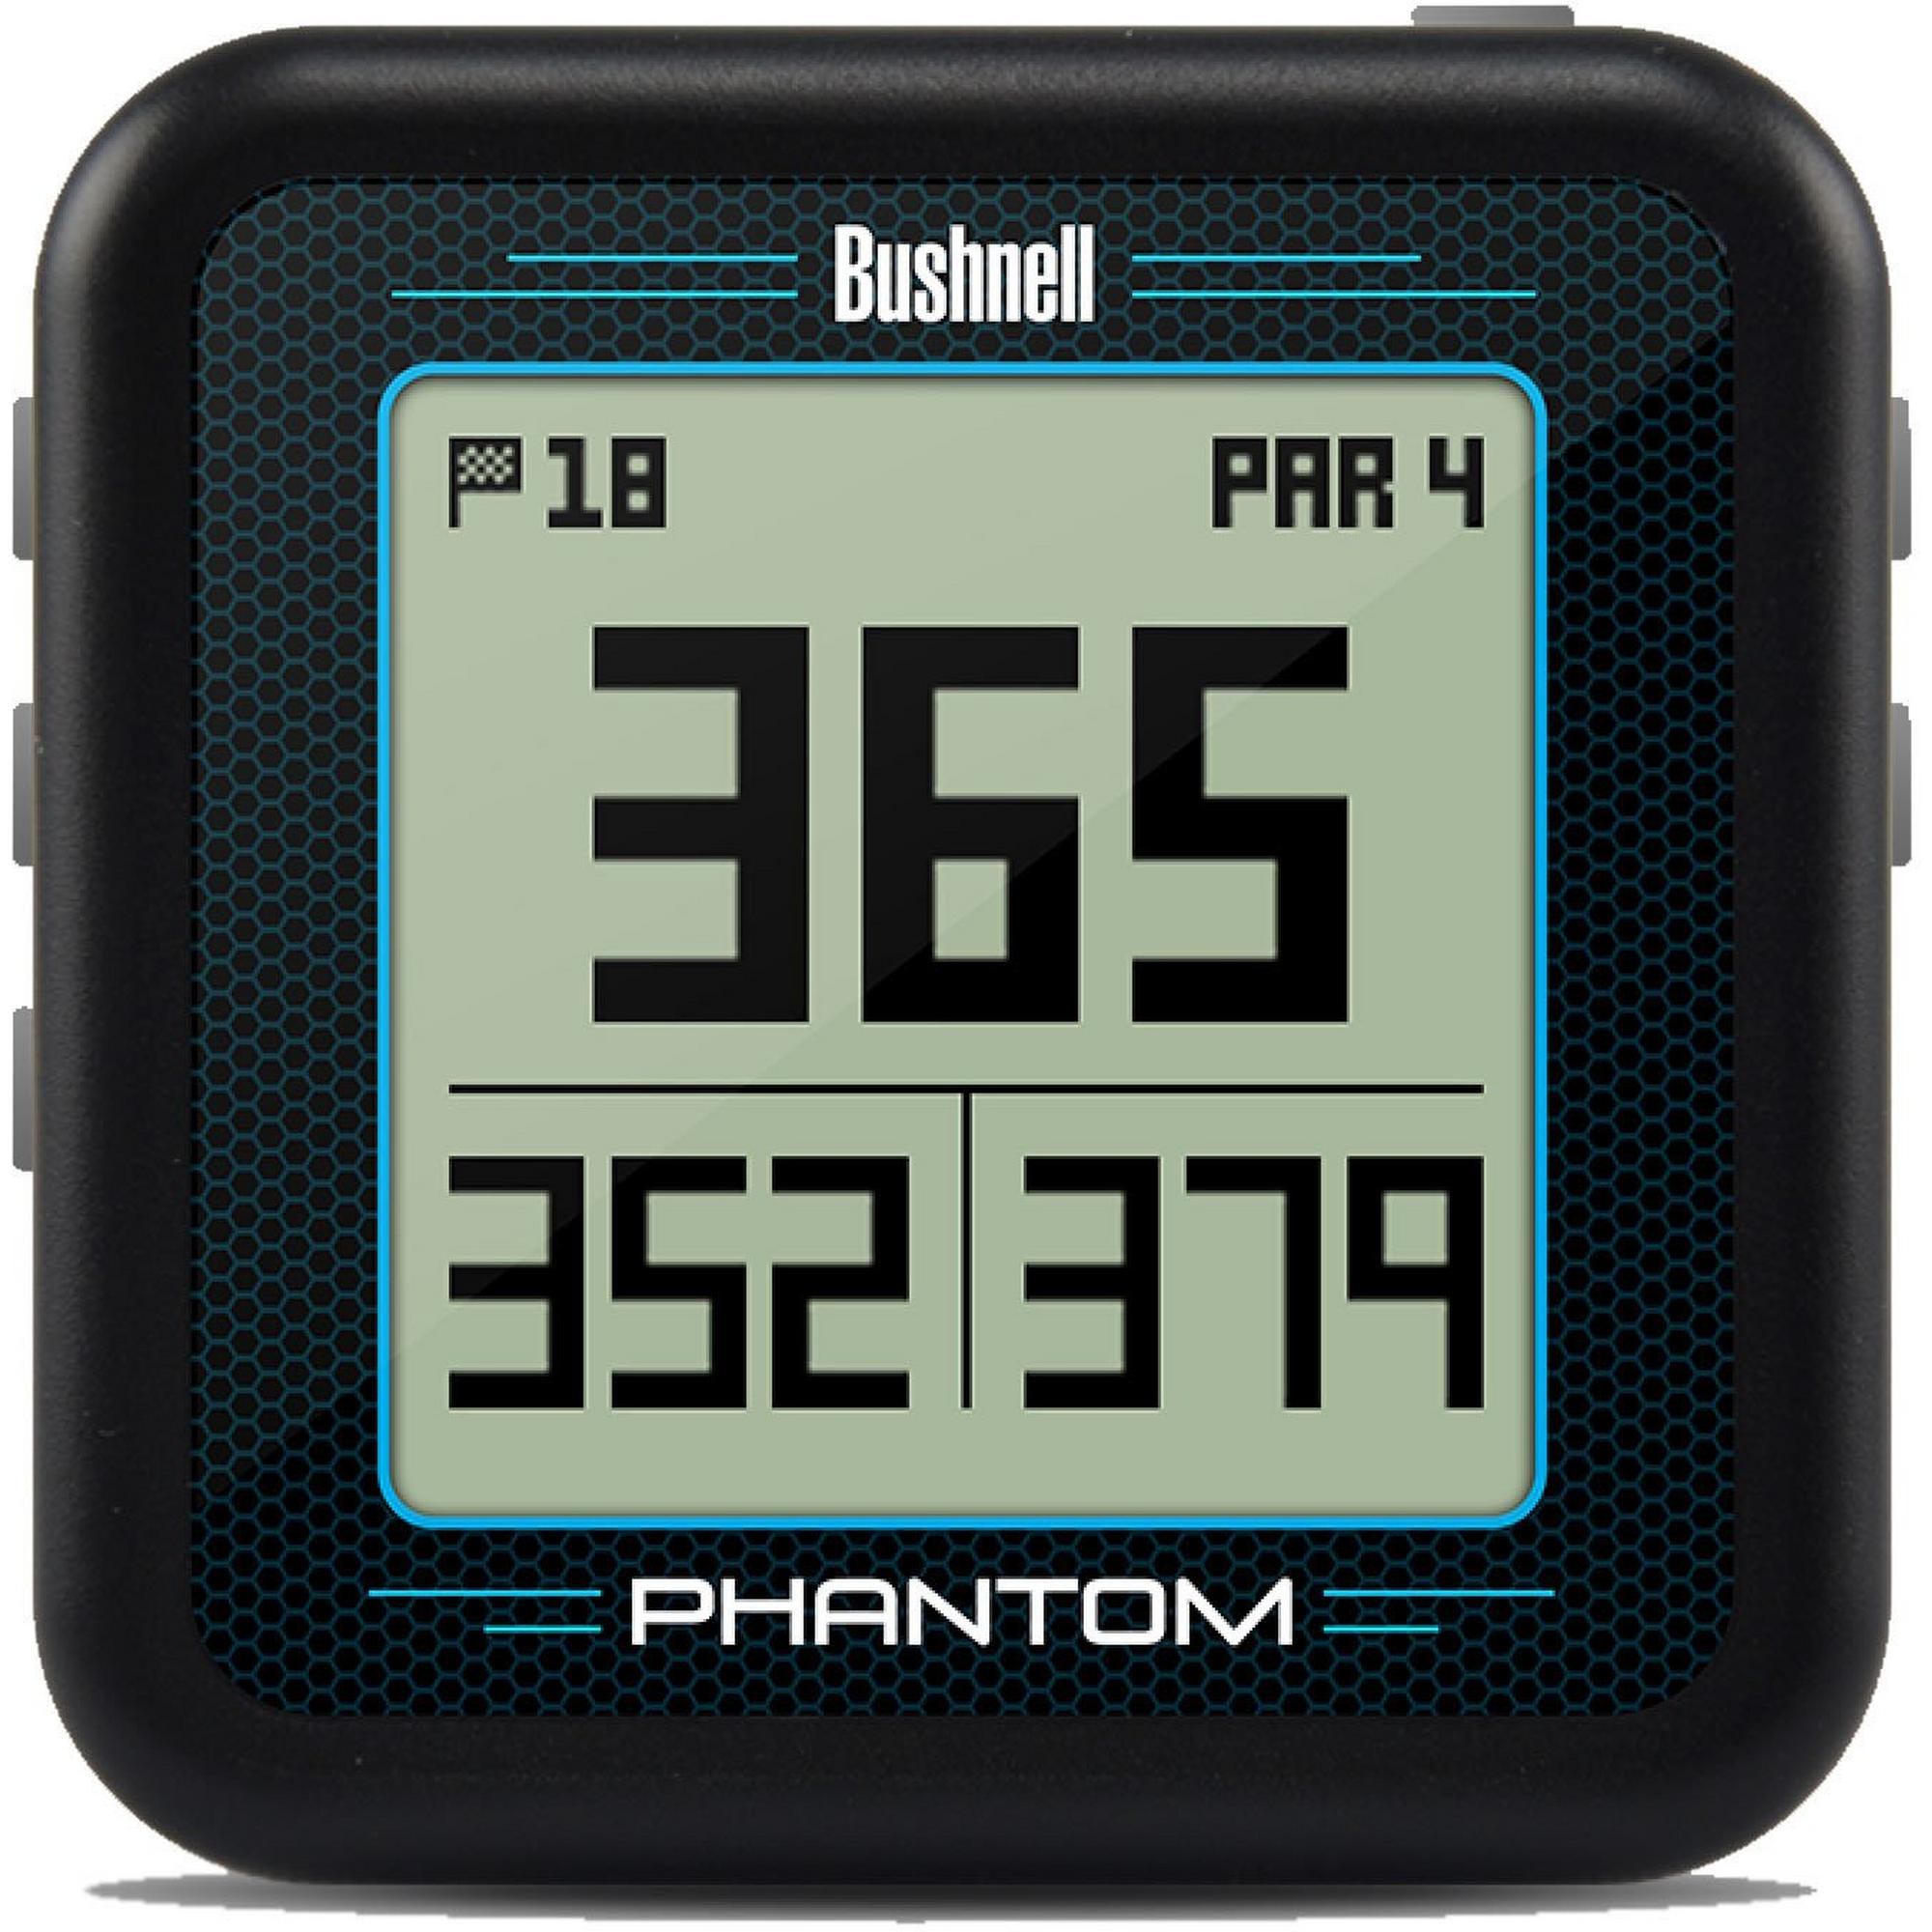 Phantom Handheld Golf GPS